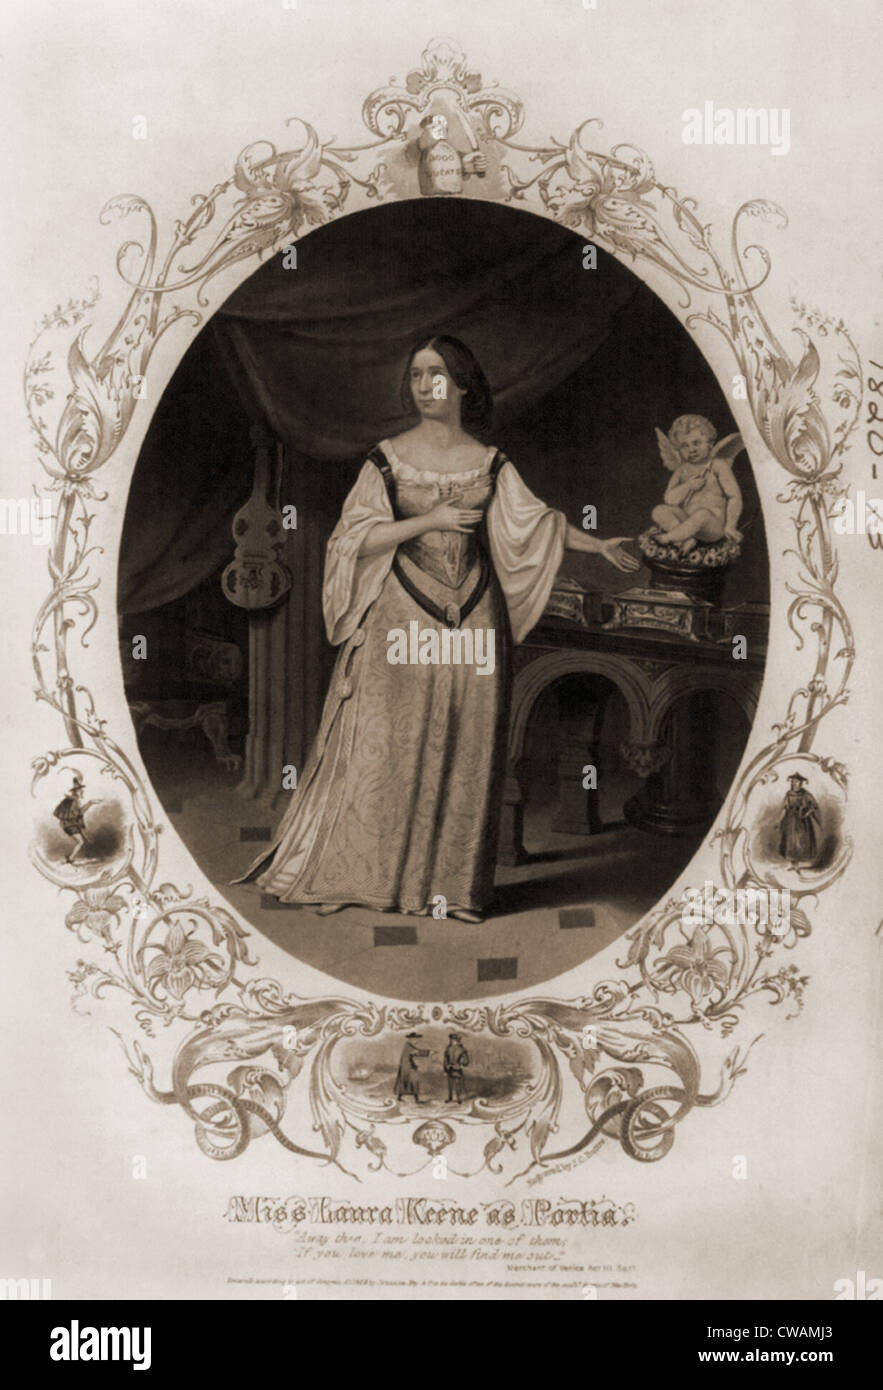 Laura Keene (1820-1873), English born actress, as Portia from Shakespeare's MERCHANT OF VENICE. After 1855 she - Stock Image